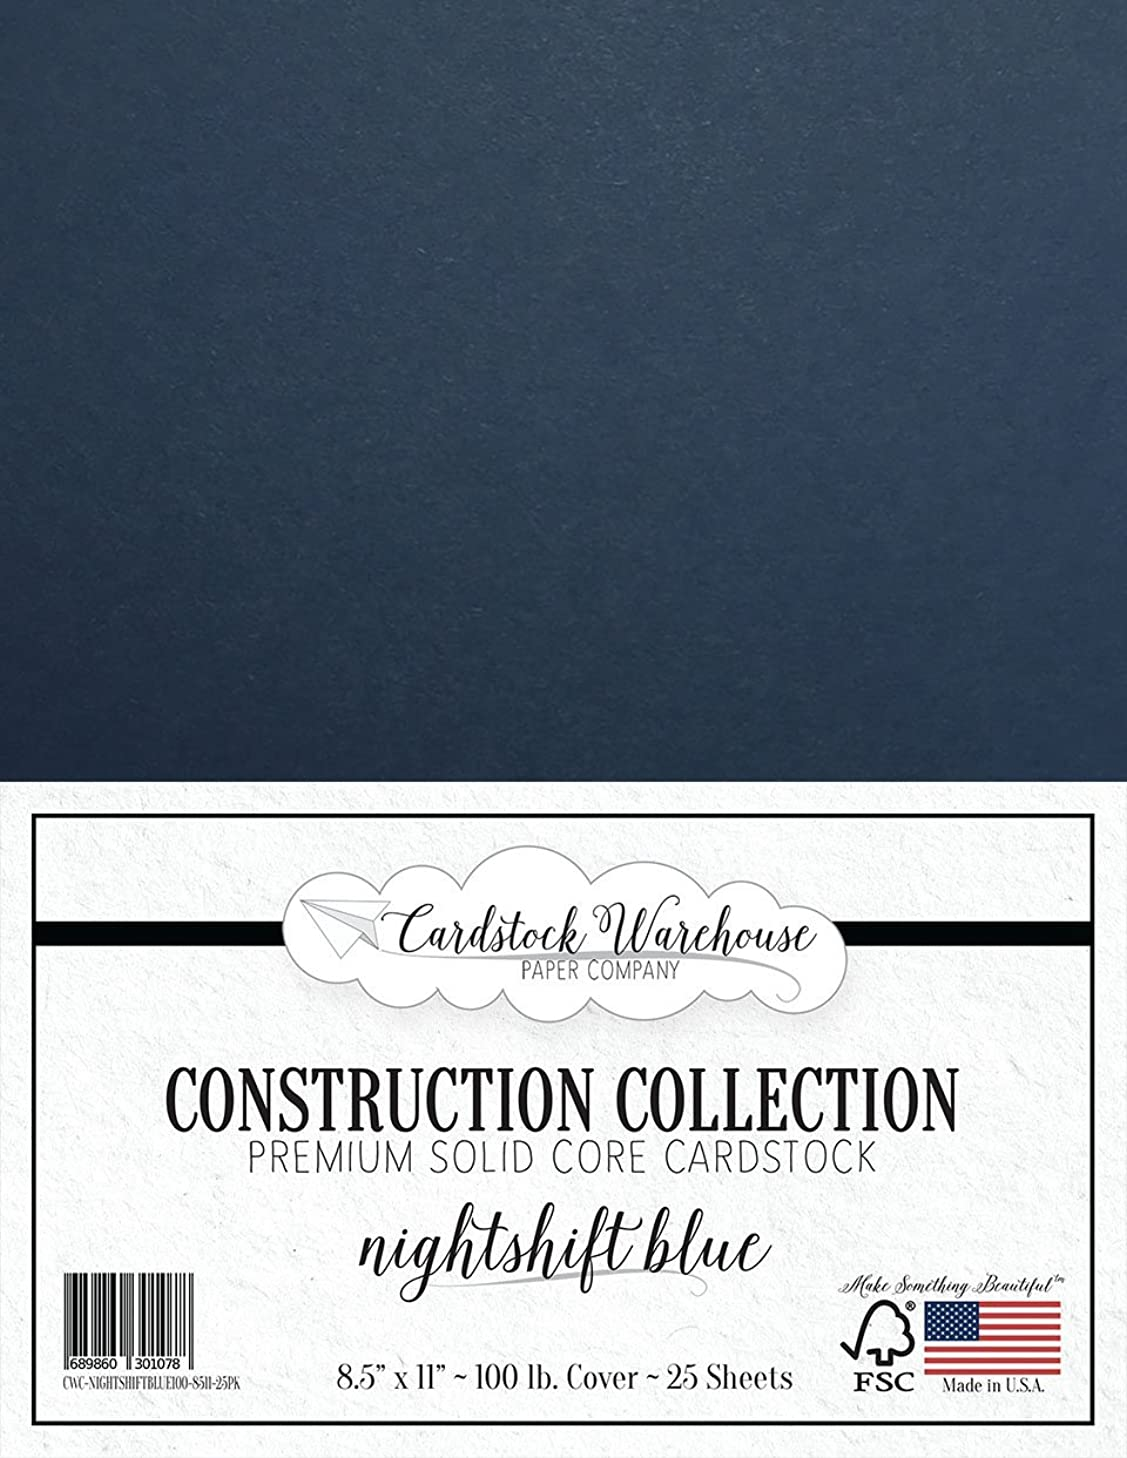 NIGHTSHIFT Blue/Dark Blue Cardstock Paper - 8.5 x 11 inch Premium 100 LB. Cover - 25 Sheets from Cardstock Warehouse